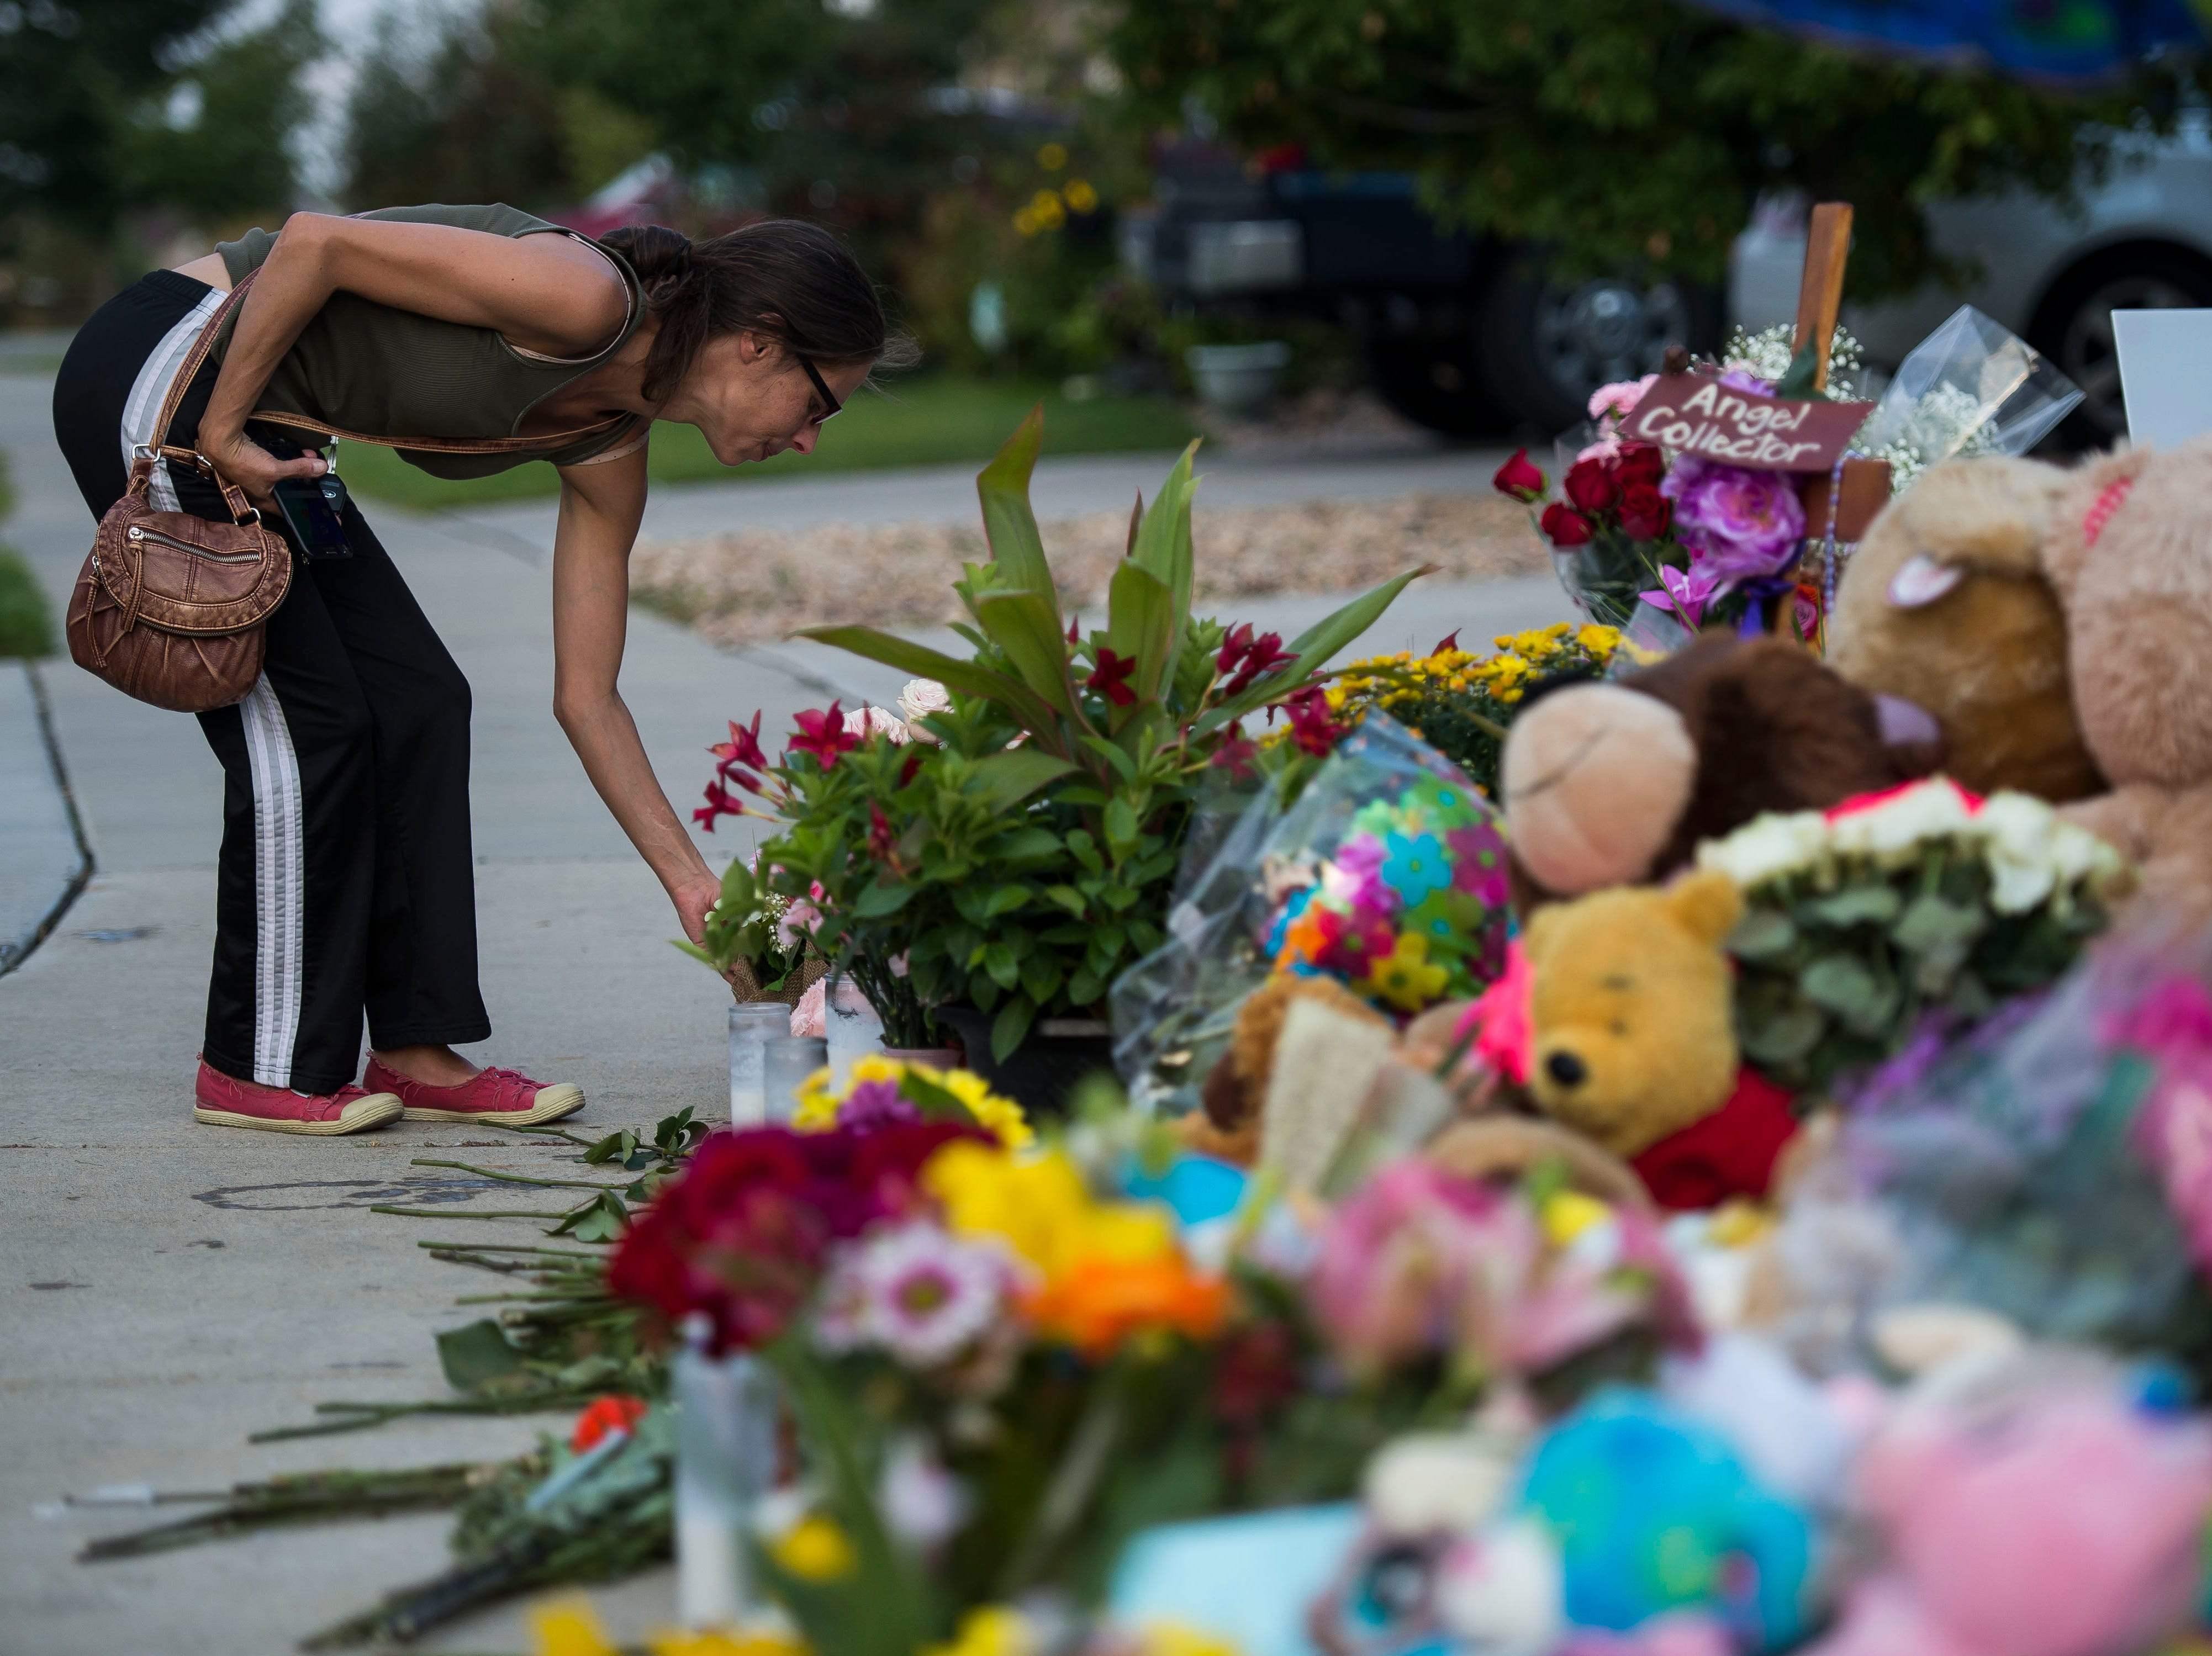 Aurora resident Kristina Hapner straitens flowers and stuffed animals at a memorial for the slain Shanann Watts and her two daughters, Bella, 4, and Celeste, 3, in front of the Watts' family home on Friday, Aug. 17, 2018, in Frederick, Colo.